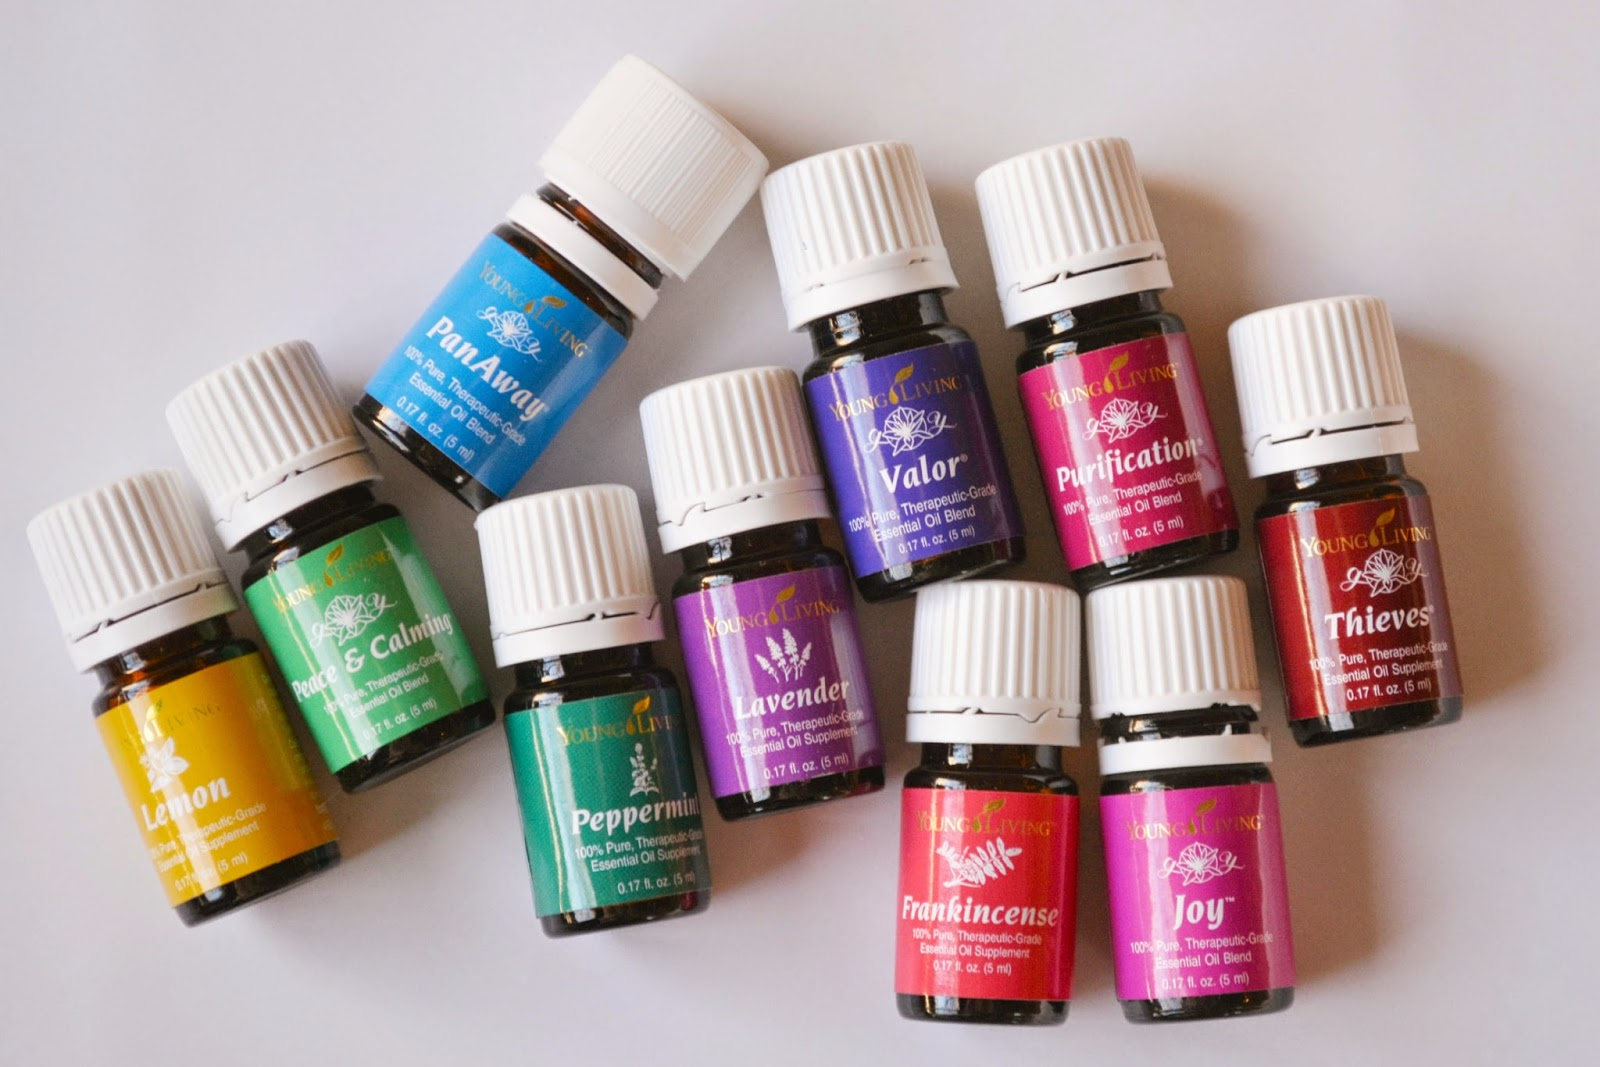 https://www.youngliving.com/signup/?sponsorid=2356560&enrollerid=2356560